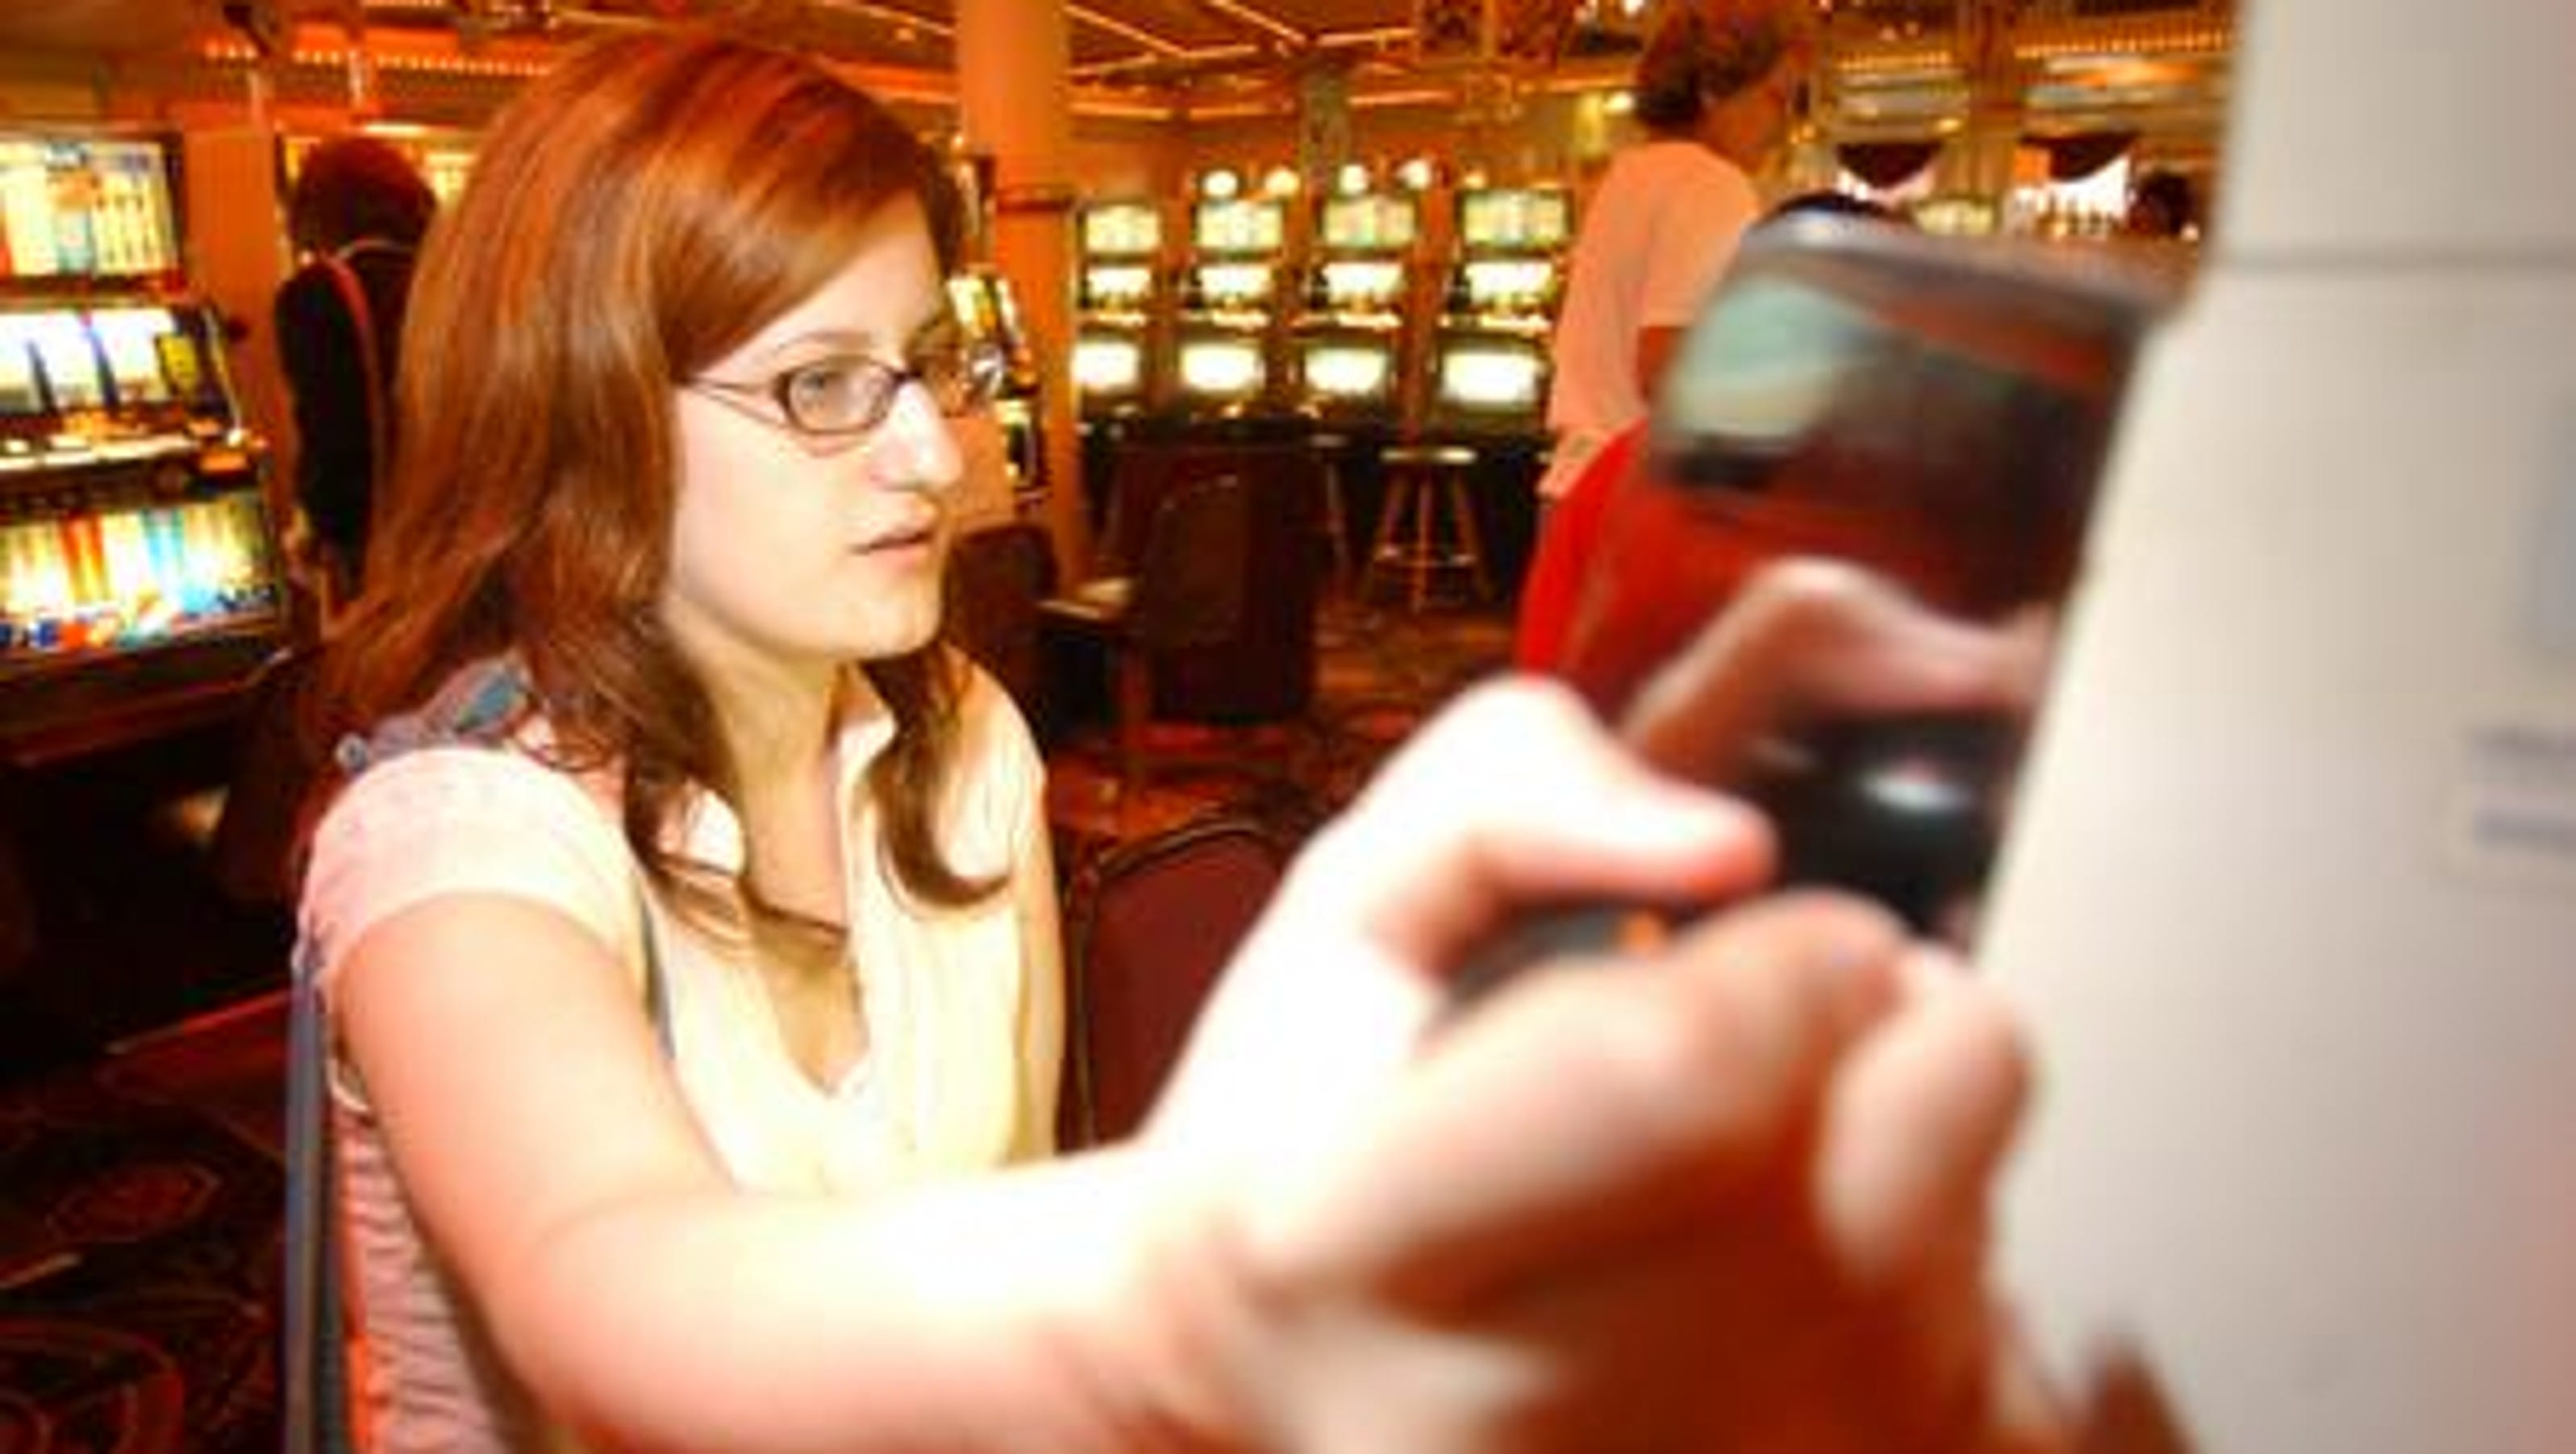 Grand victoria casino poker room phone number - Maryland live poker room phone number ...